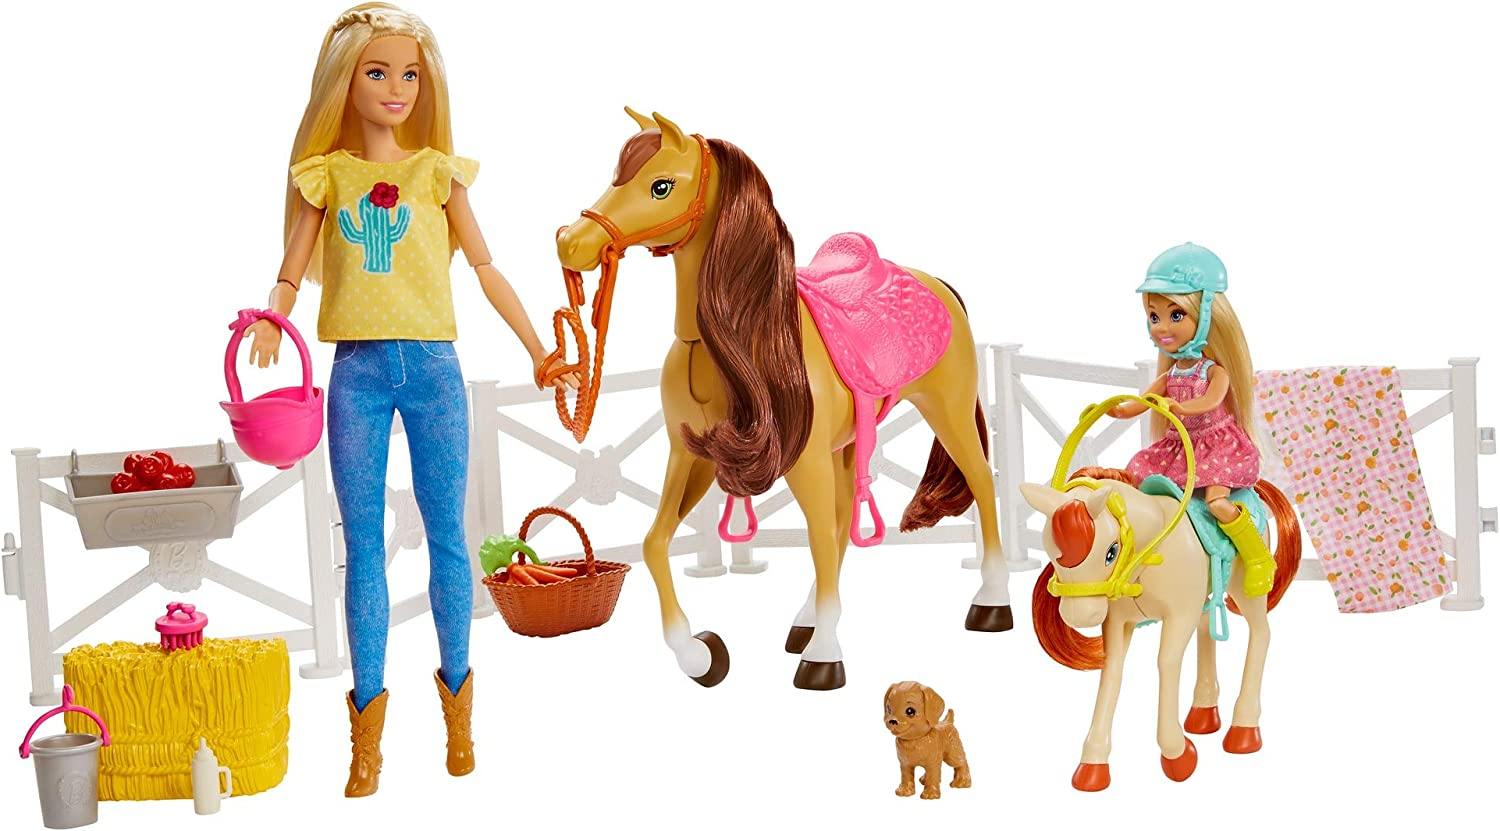 Barbie Playset and Chelsea Blonde Dolls, 2 Horses with Bobbling Heads and 15+ for Kids 3 Years Old and Up